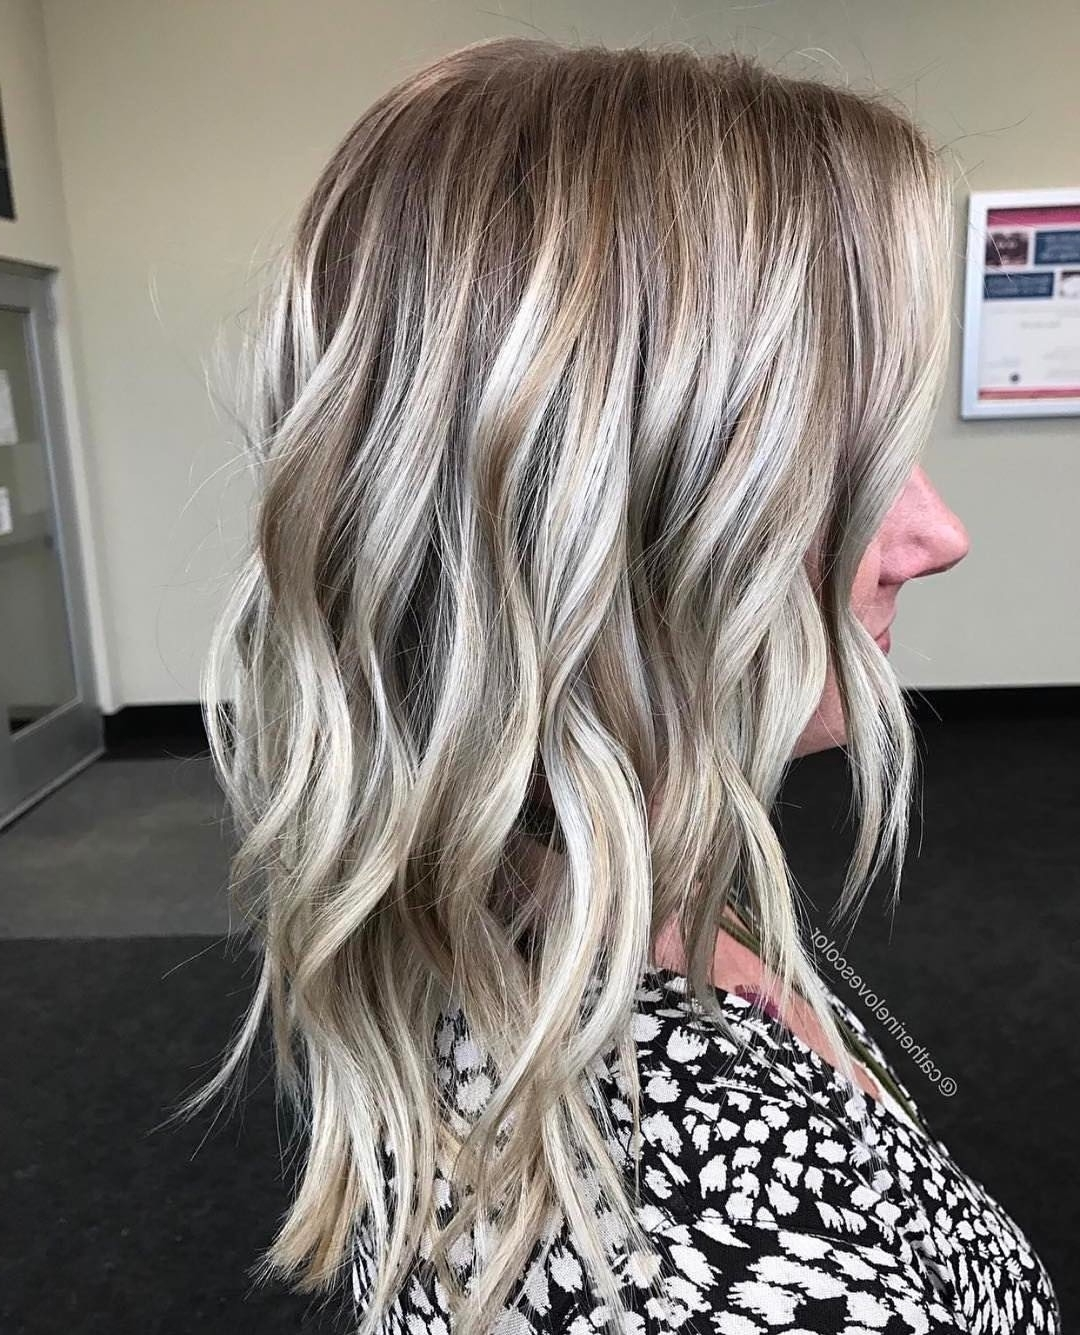 Newest Dirty Blonde Balayage Babylights Hairstyles Inside 20 Adorable Ash Blonde Hairstyles To Try: Hair Color Ideas (View 5 of 20)